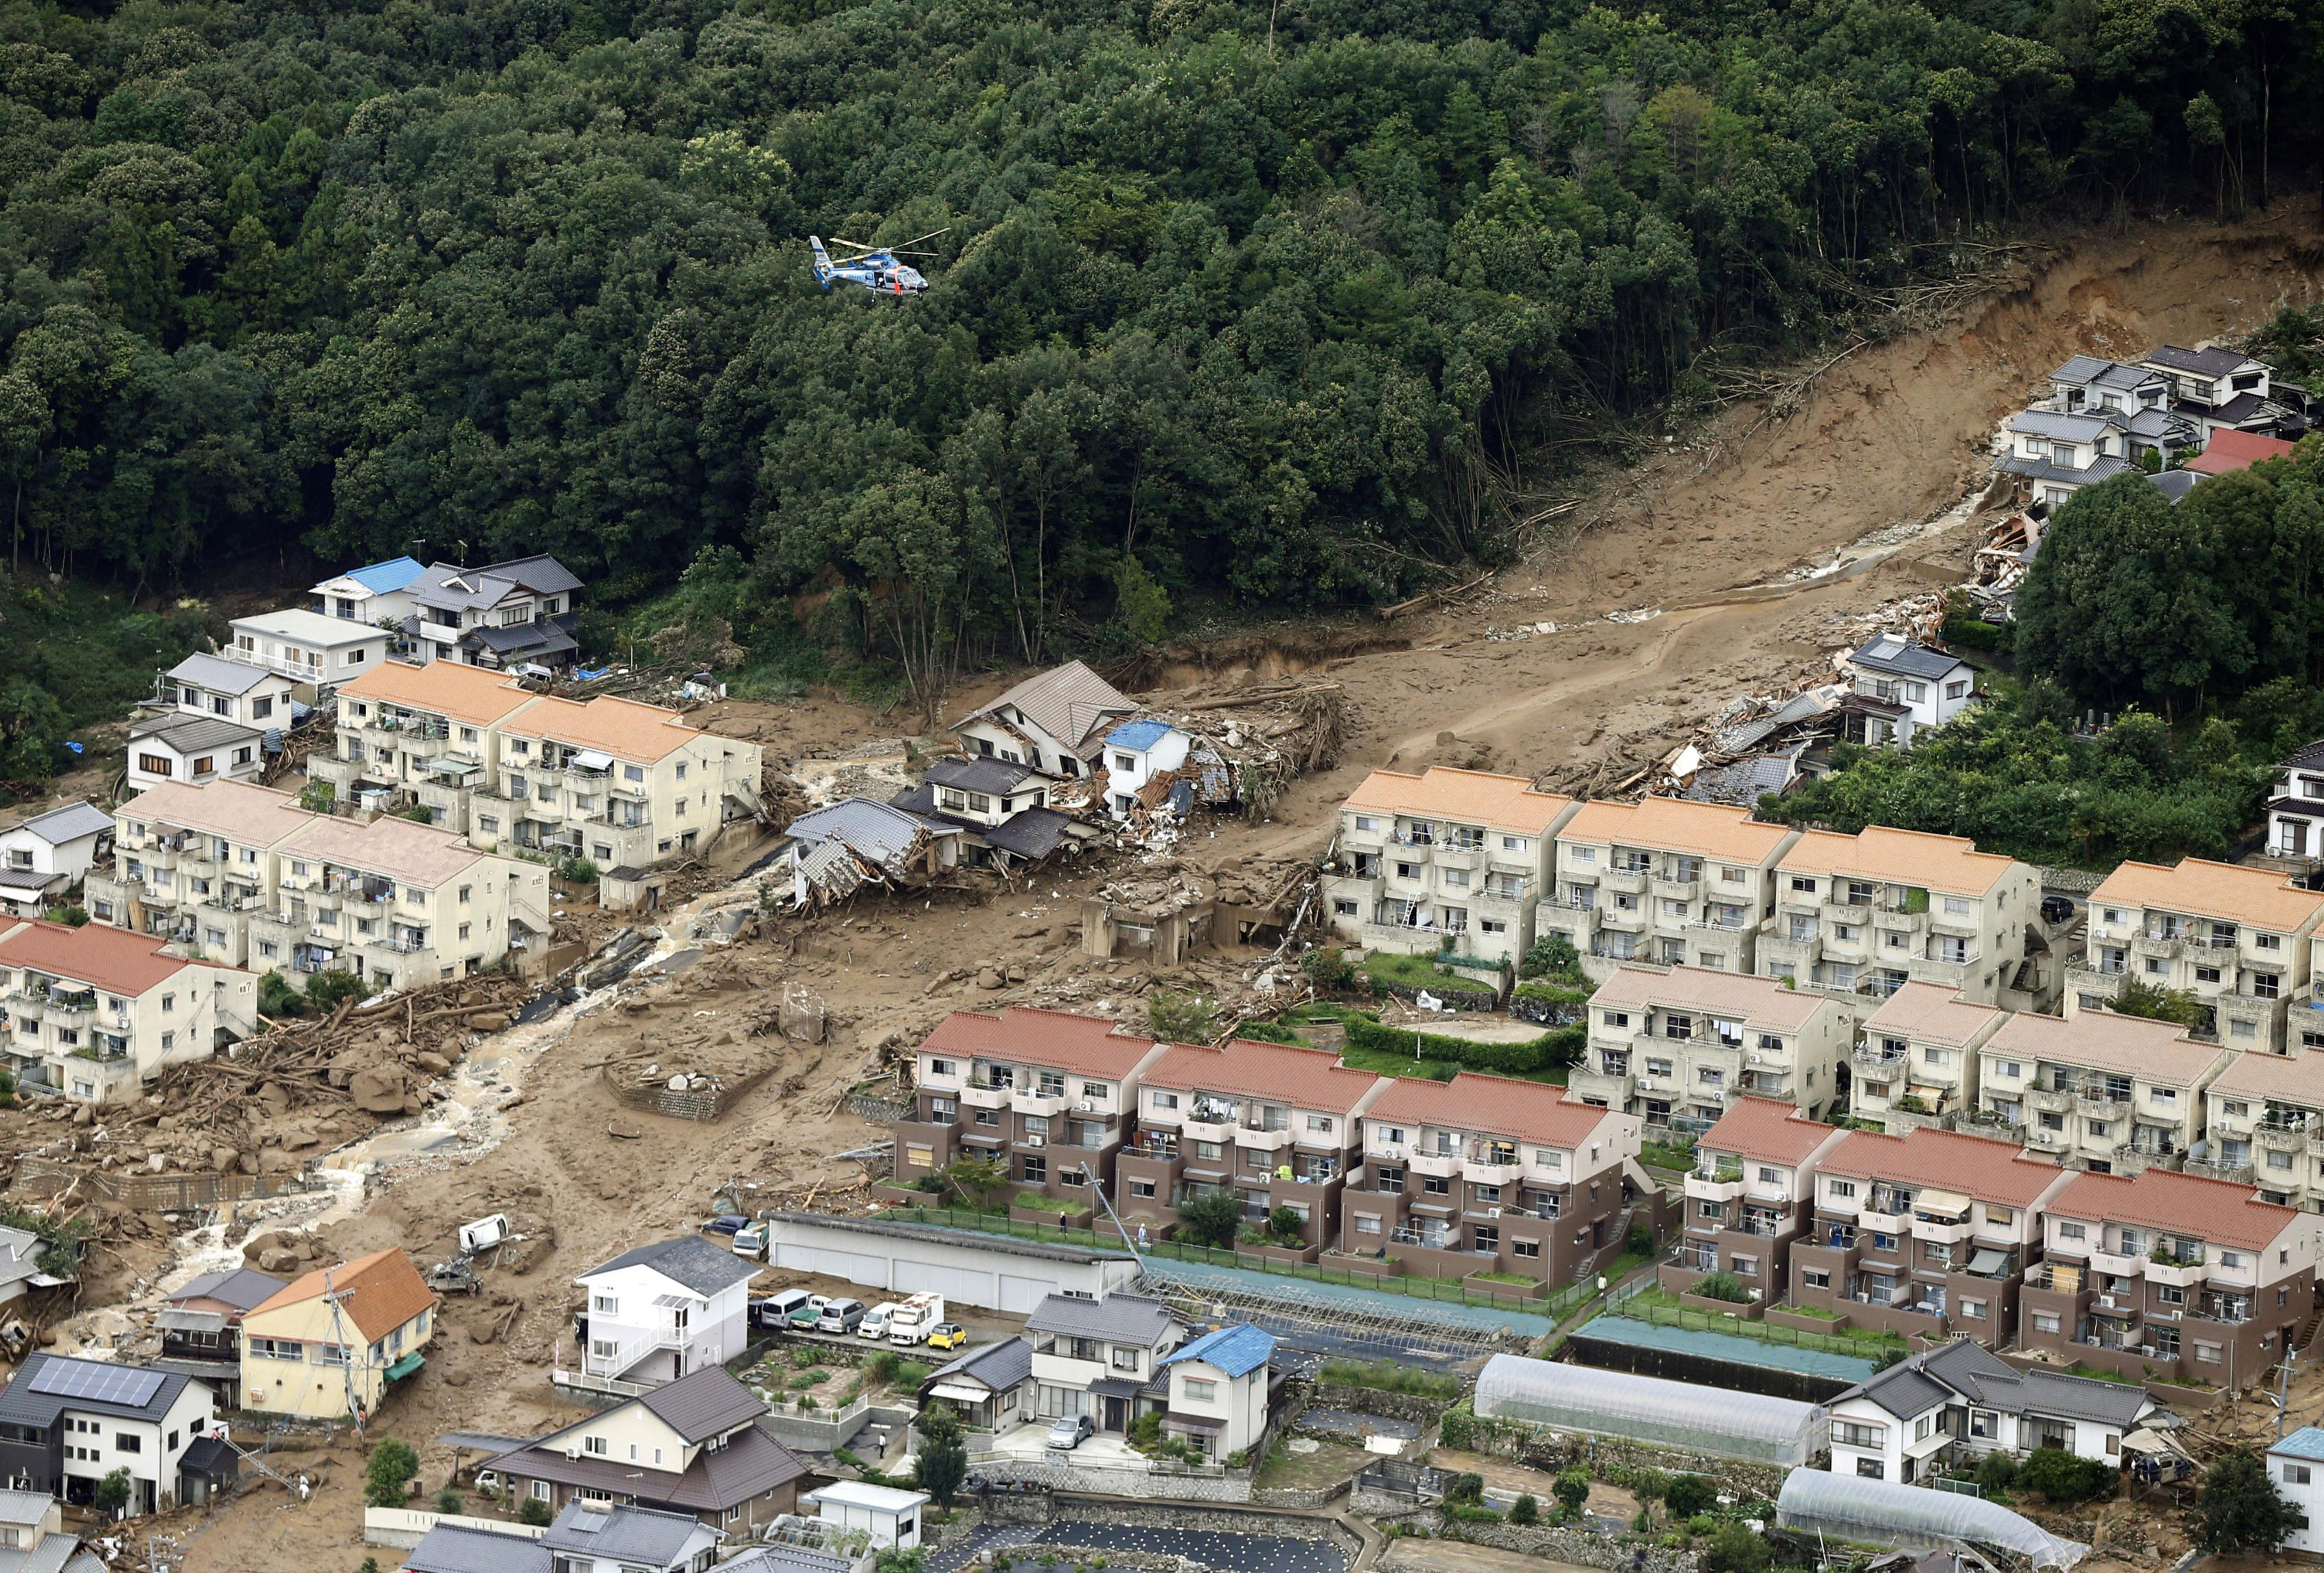 36 dead, 7 missing in Hiroshima landslides